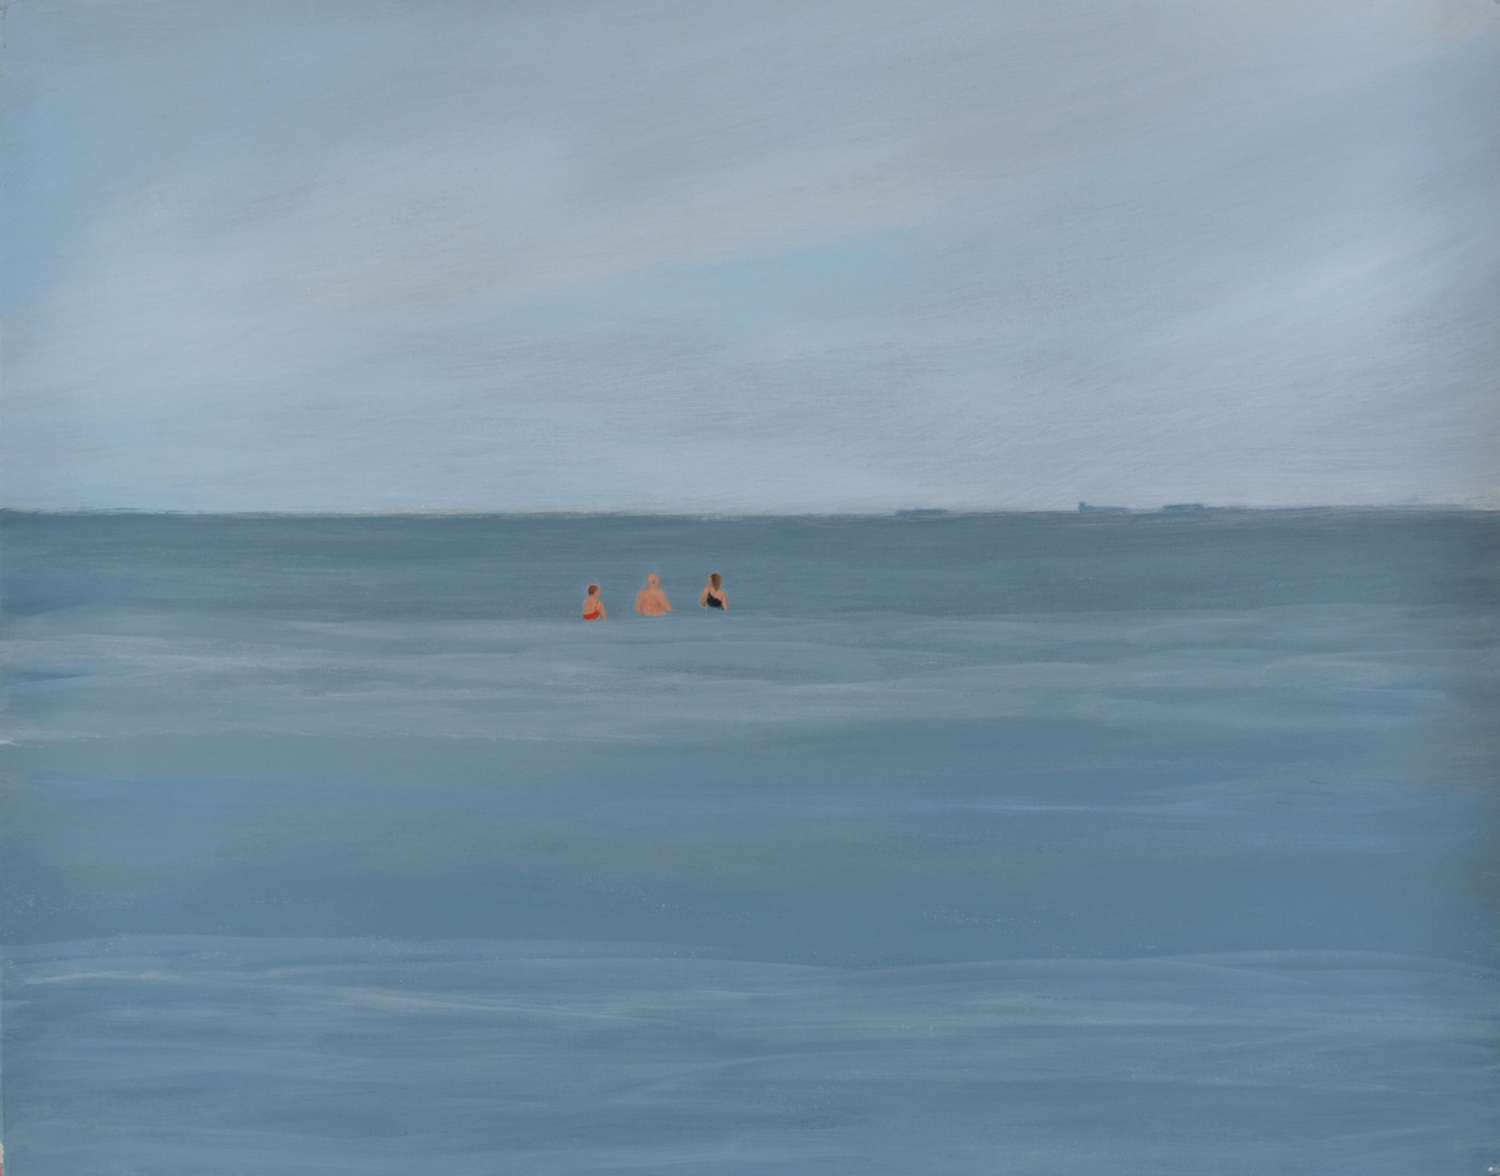 View Image Details SWIMMERS SERIES